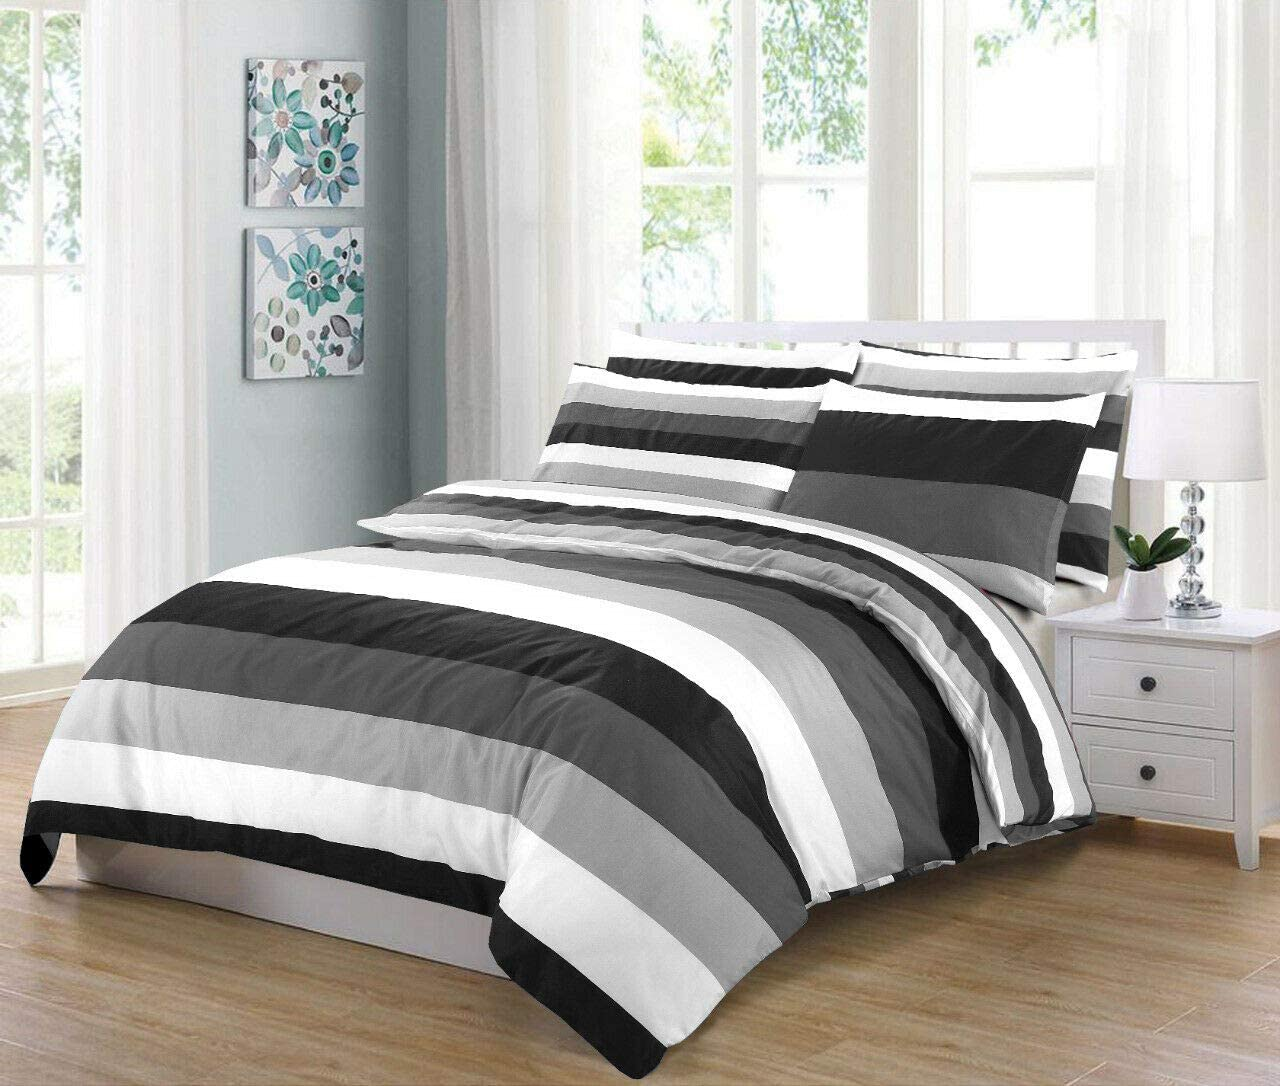 Grey Duvet Cover 100/% Cotton Percale 200 Thread Count Fully Reversible Stripe Quilt Covers Bedding Sets Double King Super King Size King